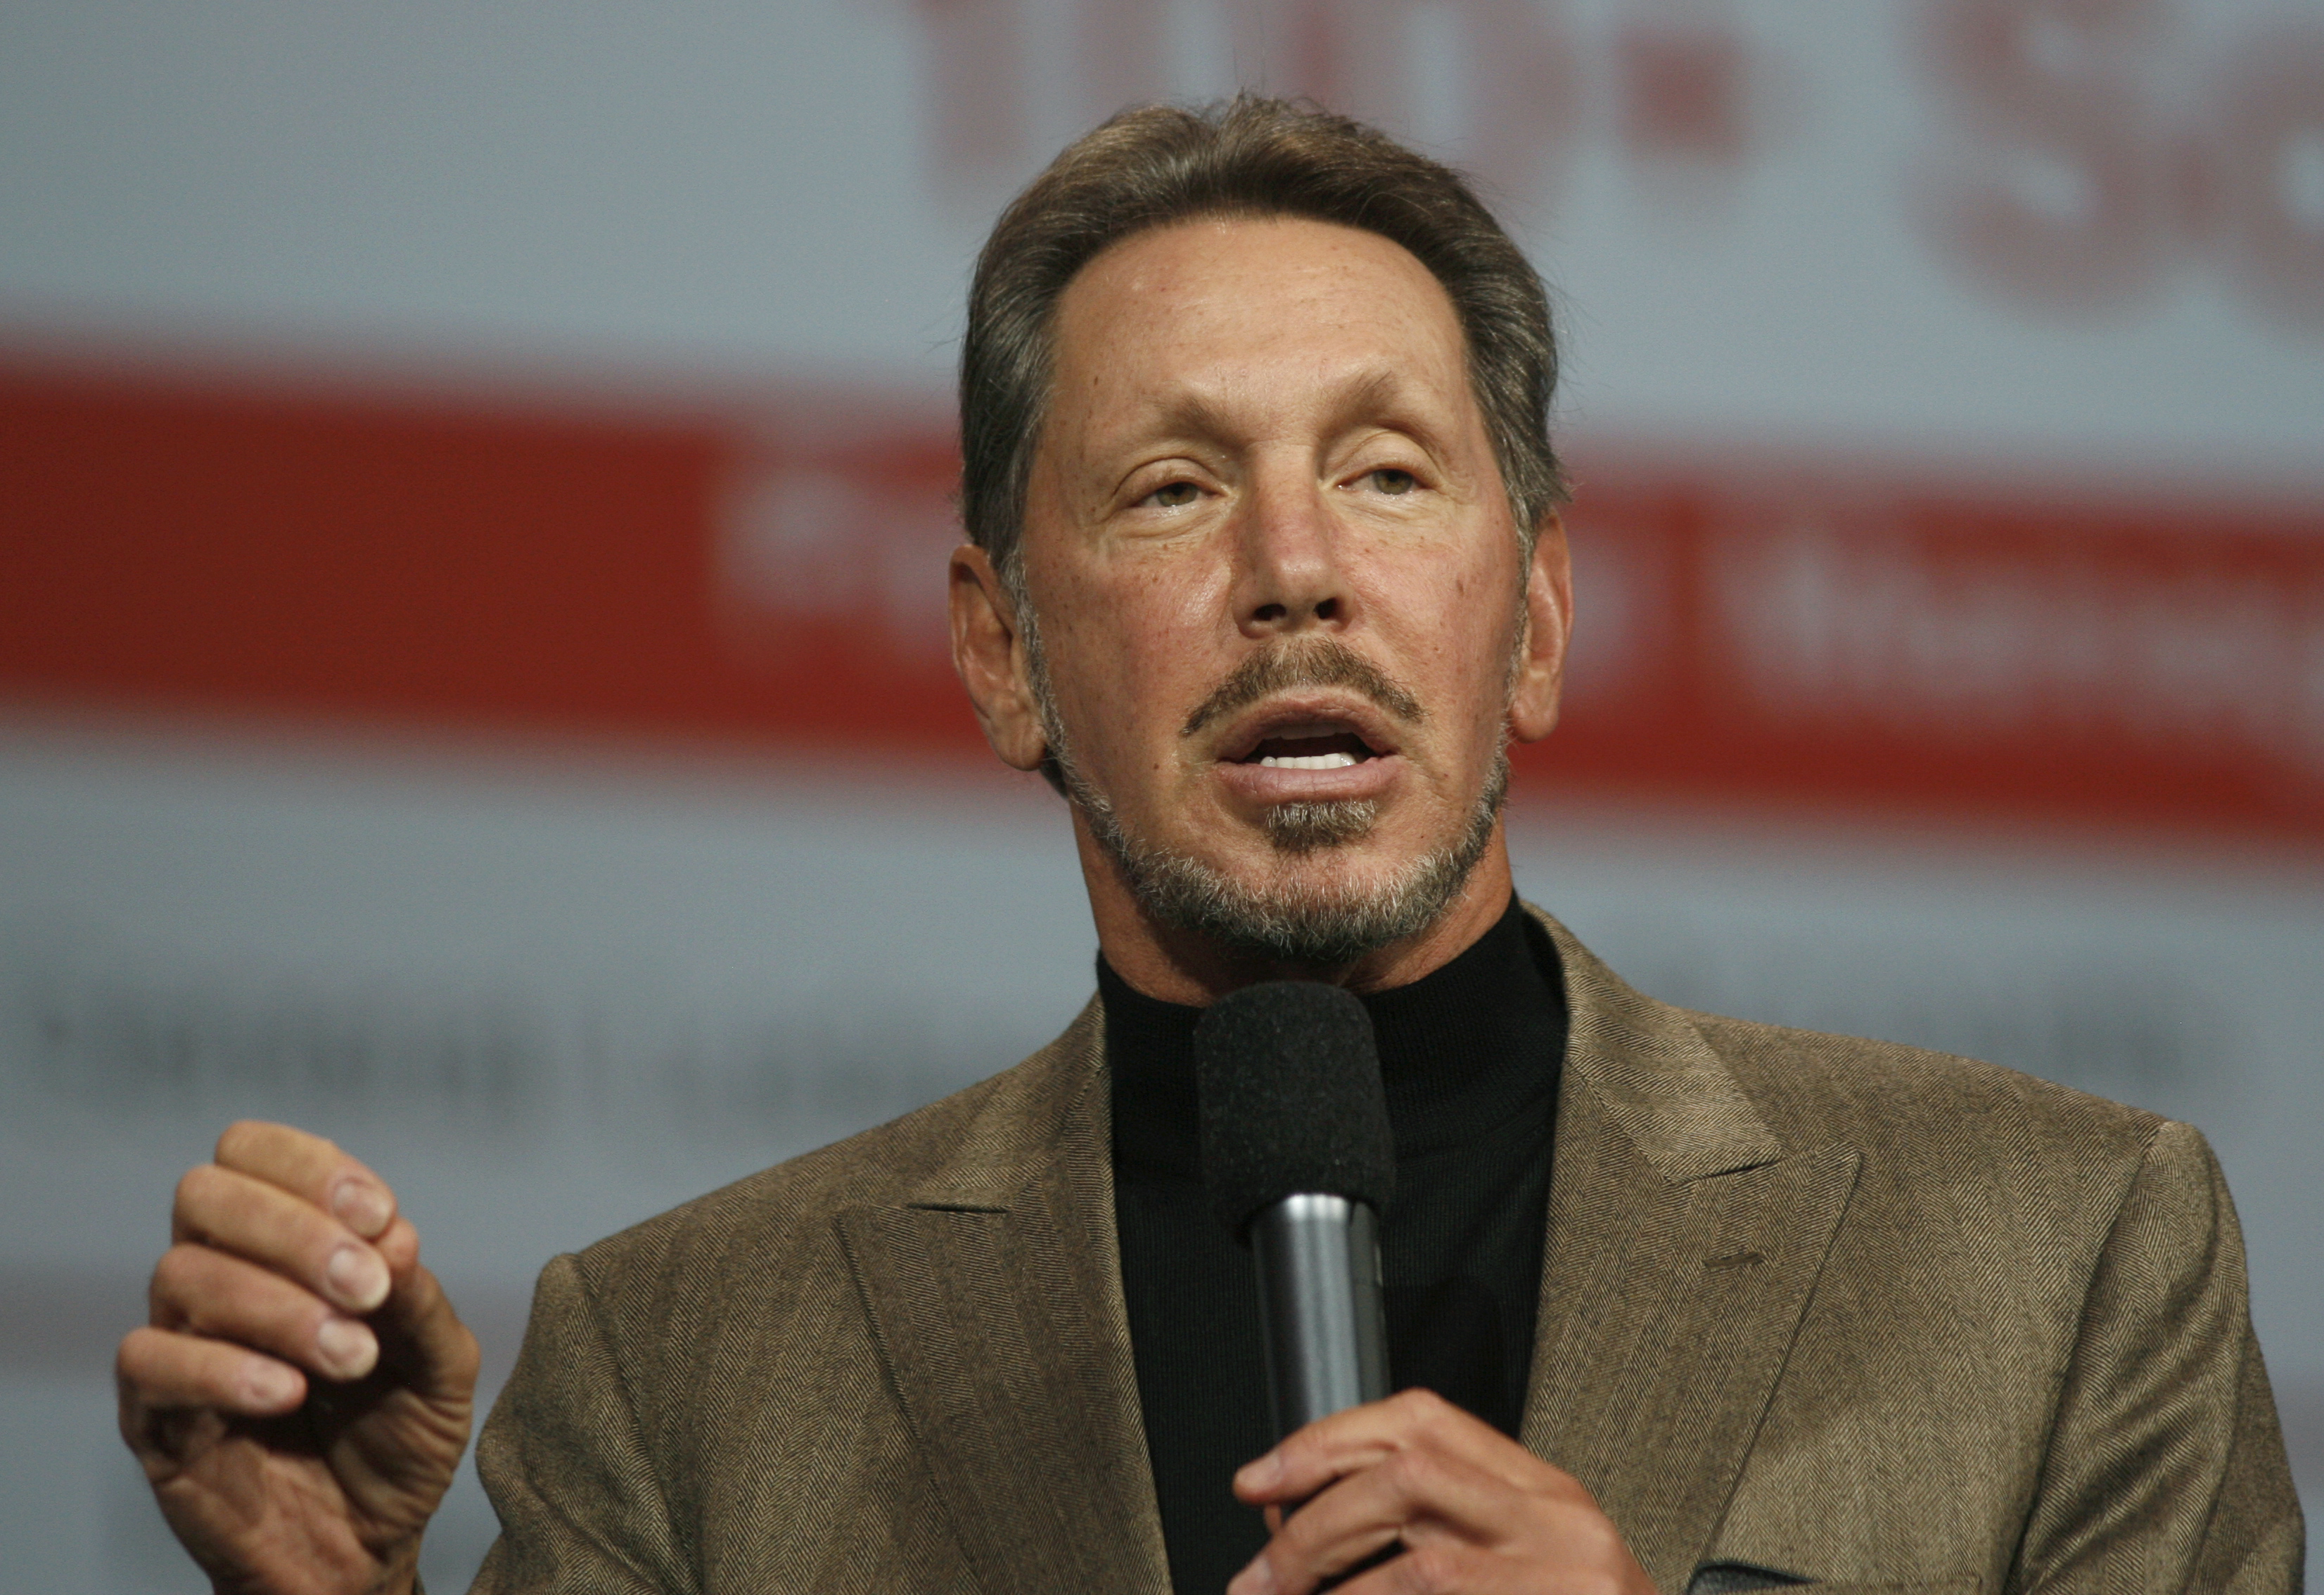 Oracle CEO Larry Ellison delivers a keynote at the Moscone Center in San Francisco during the Oracle OpenWorld 2011 on October 5, 2011 in California. (Photo by Kimihiro Hoshino/AFP/Getty Images)